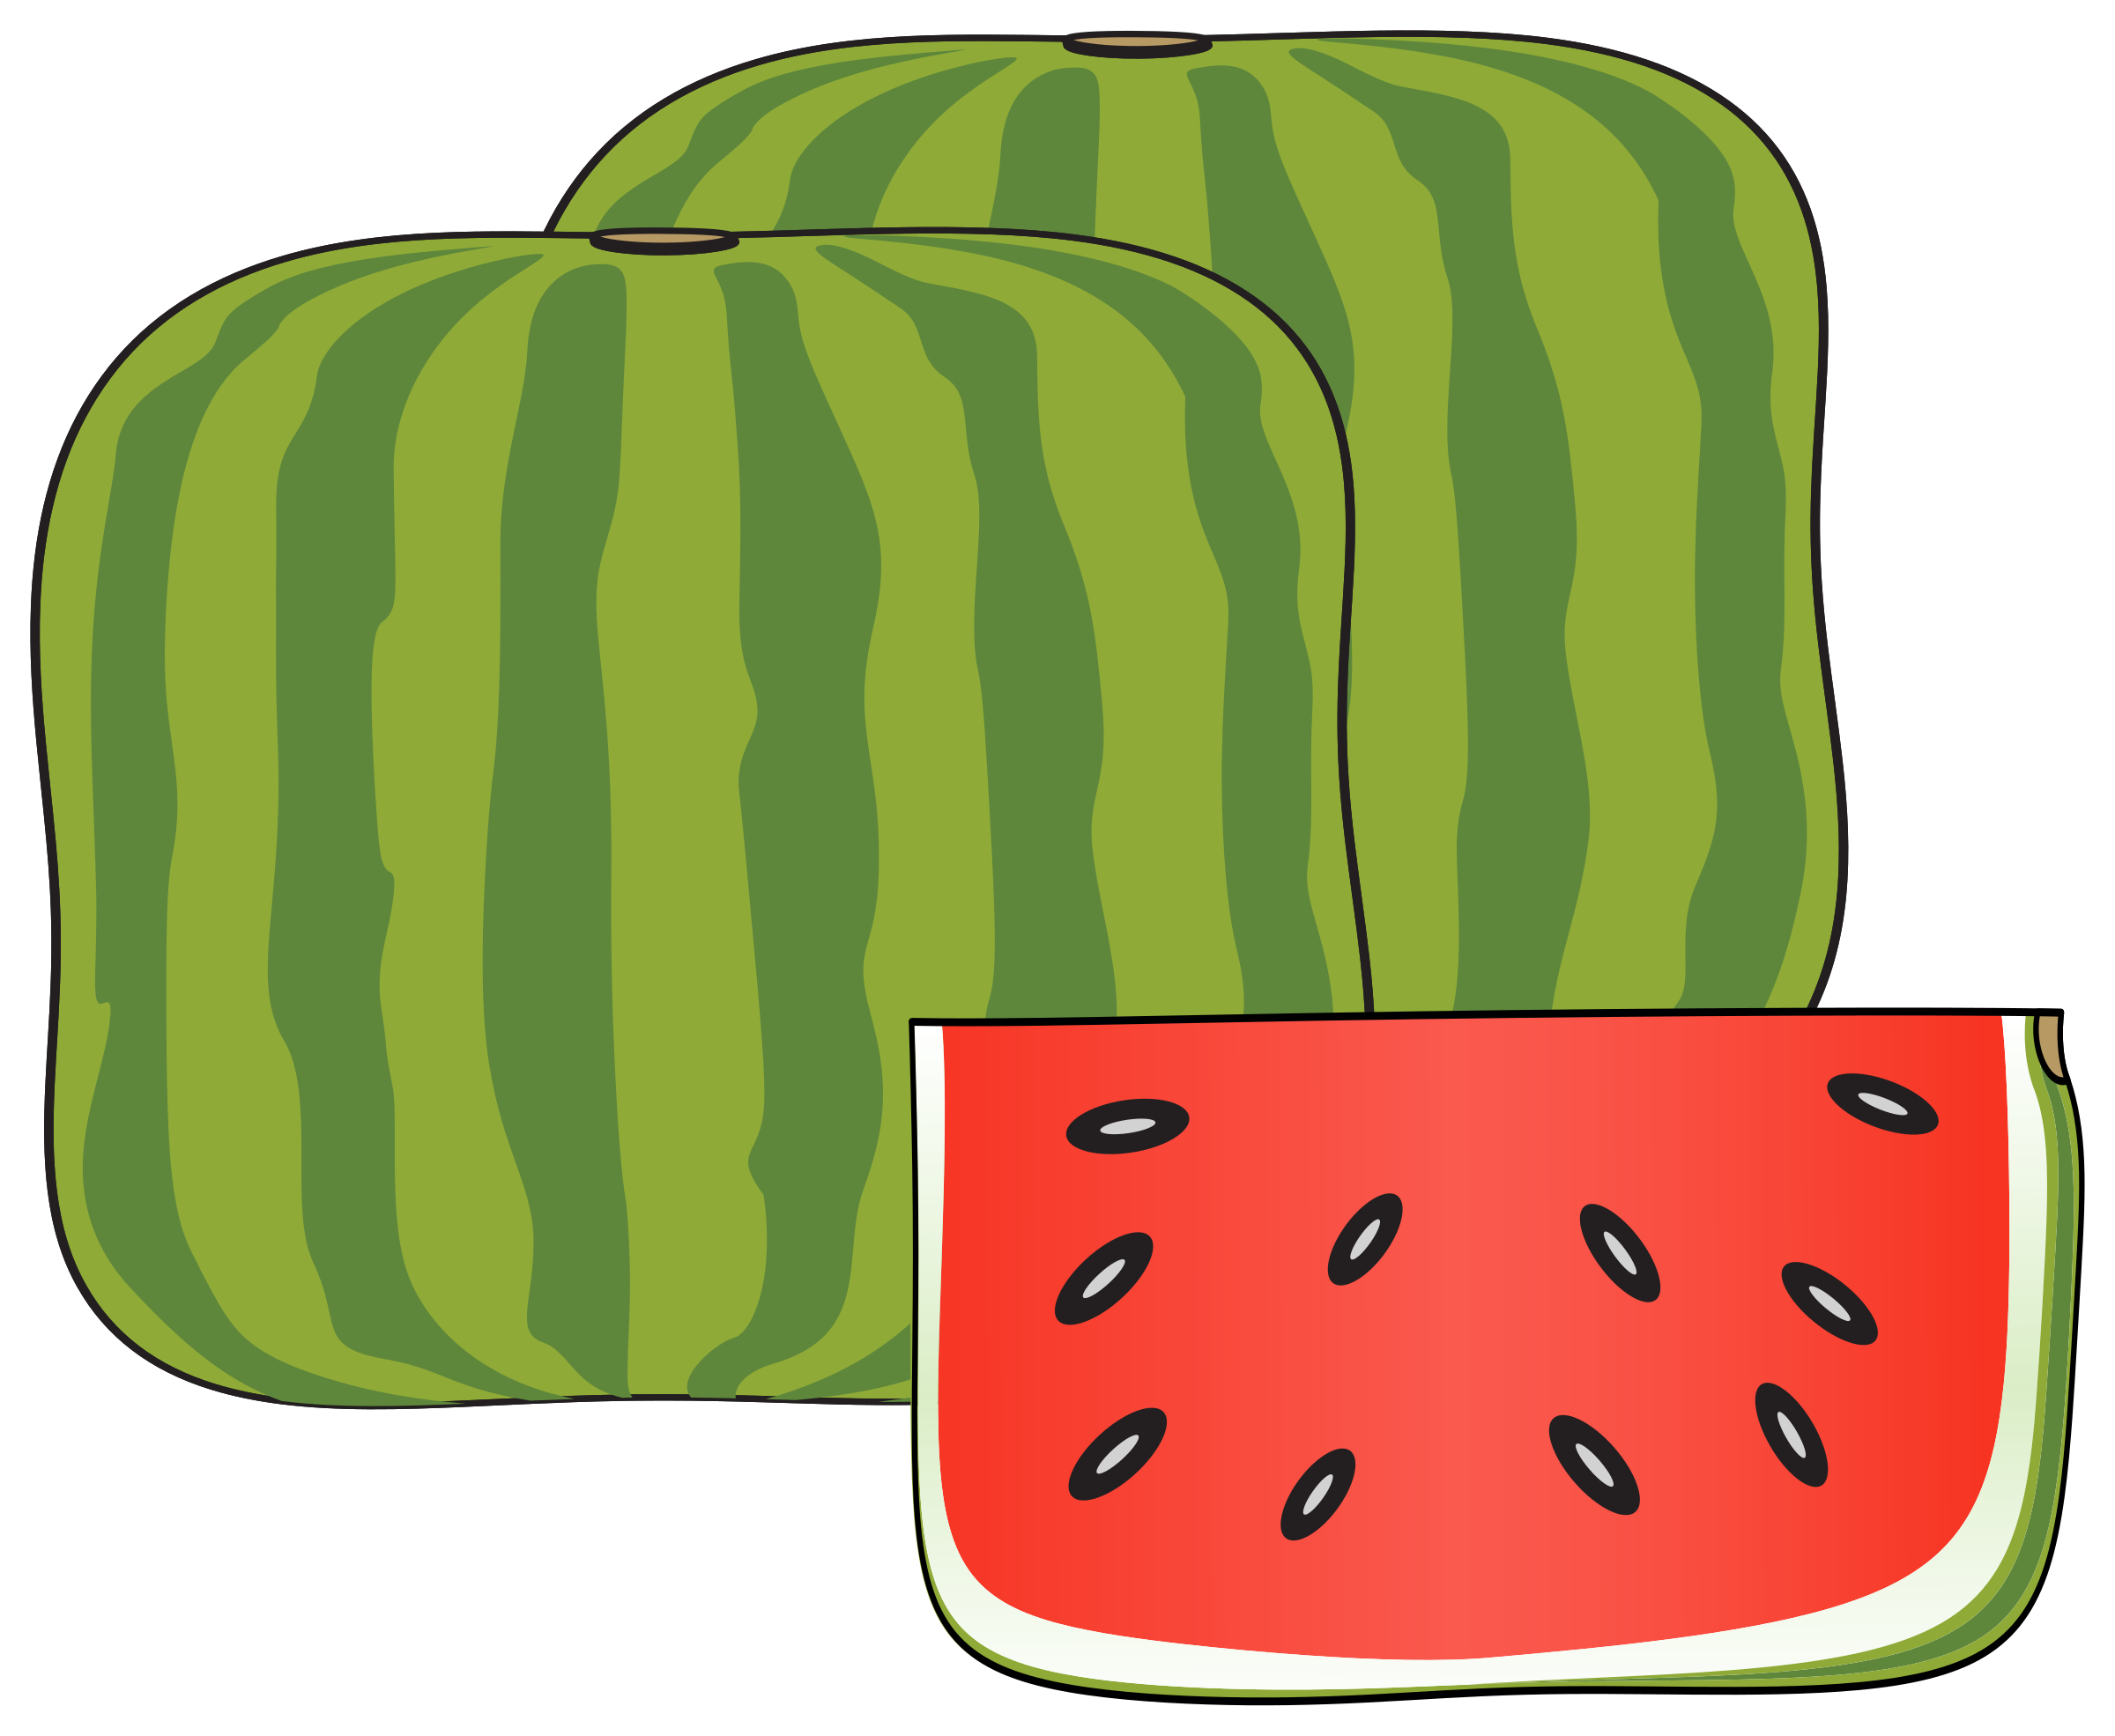 Watermelon clipart carton. Cubical icons png free